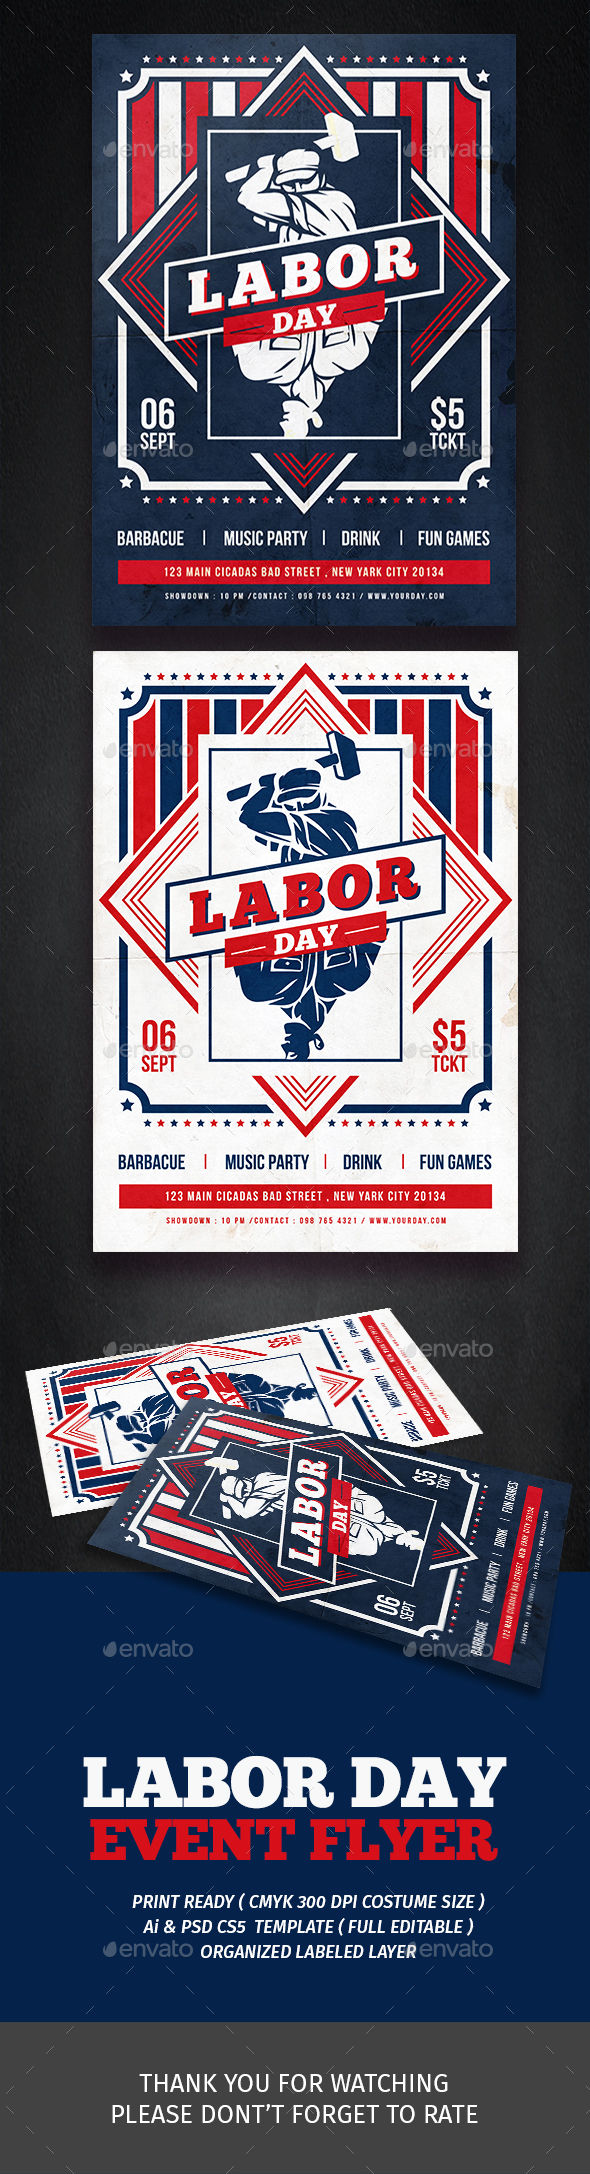 Labor Day Festival Flyer by Tokosatsu (Labor Day party flyer)